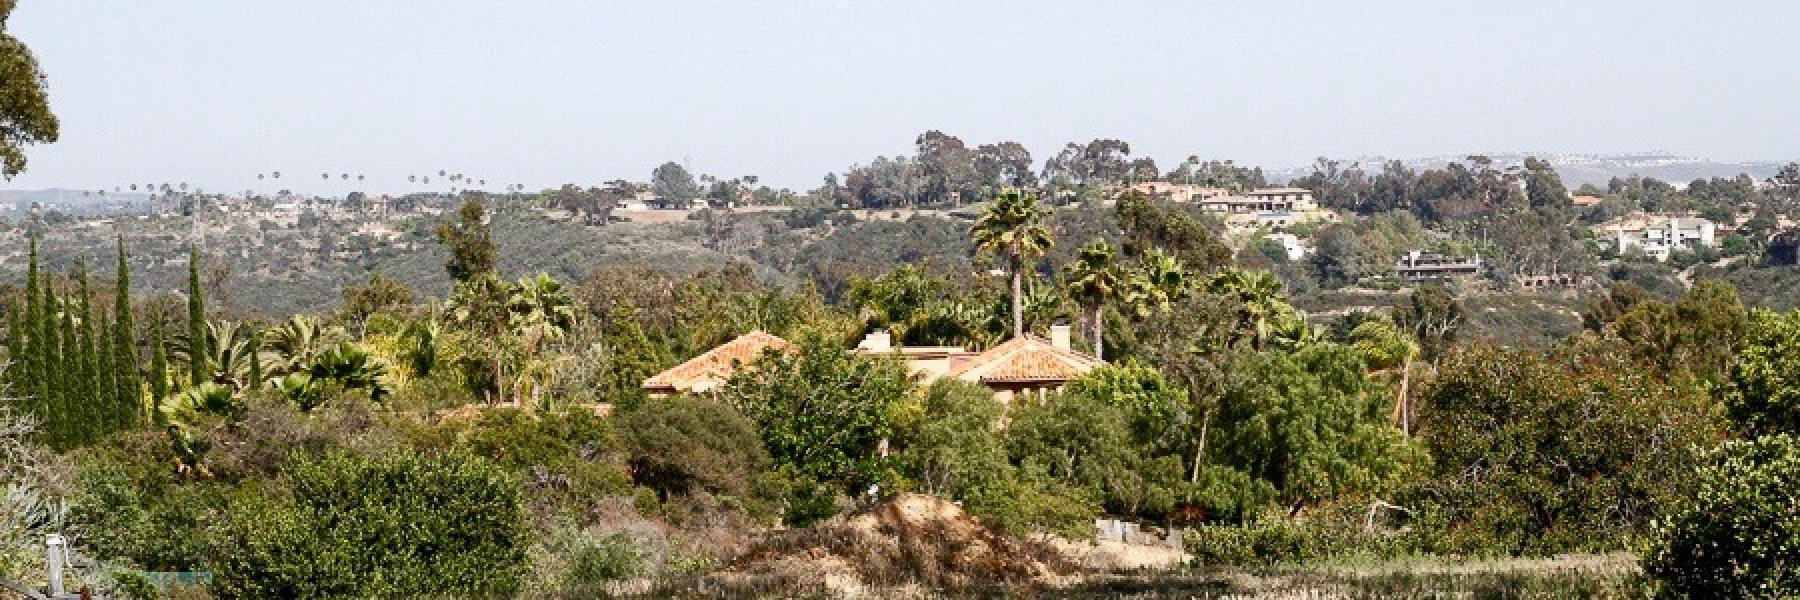 Rancho Diegueno Estates is a community of homes in San Diego California